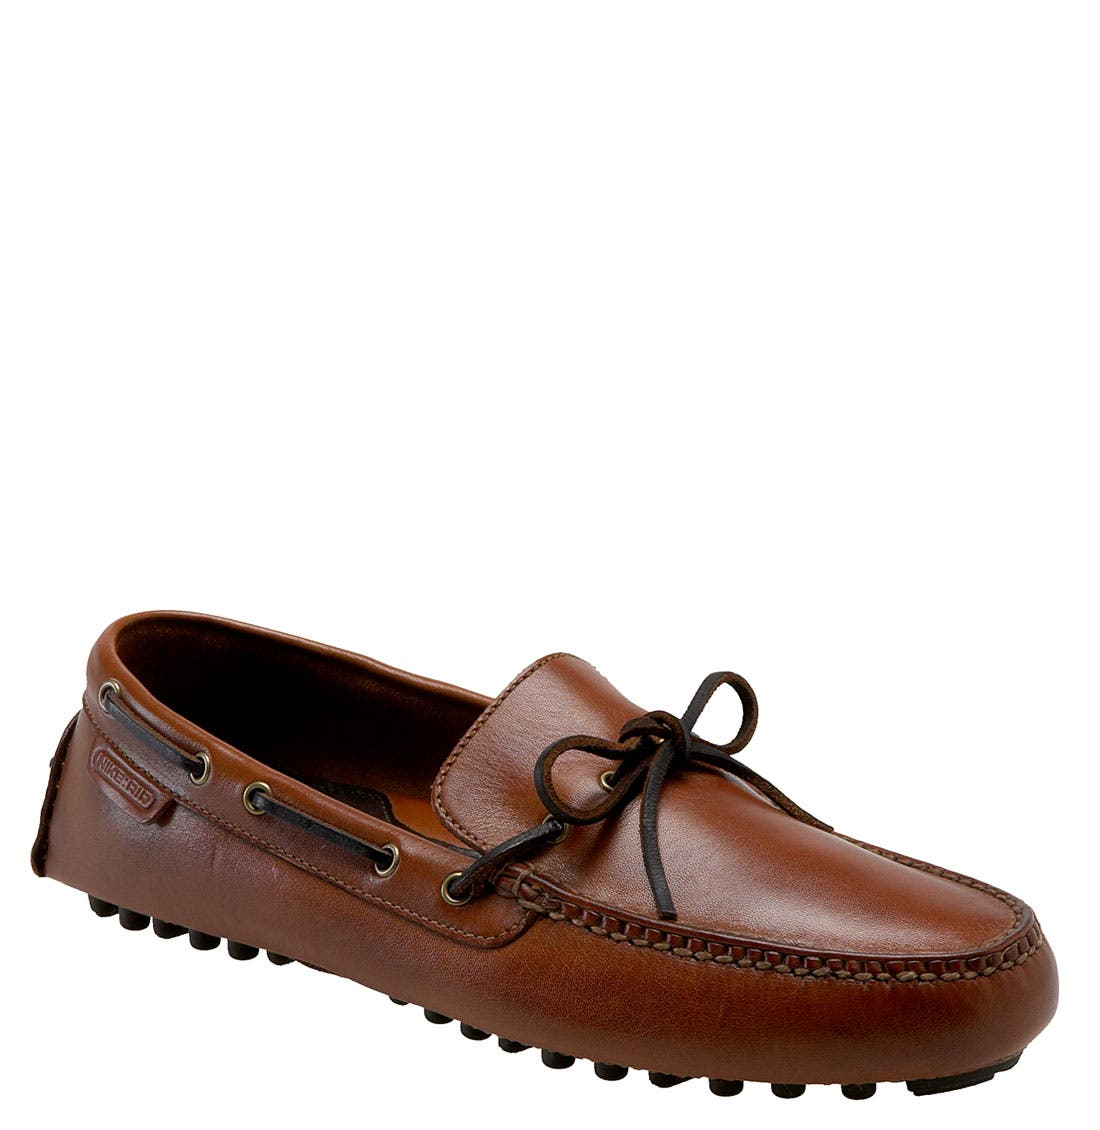 Main Image - Cole Haan 'Air Grant' Loafer (Men)